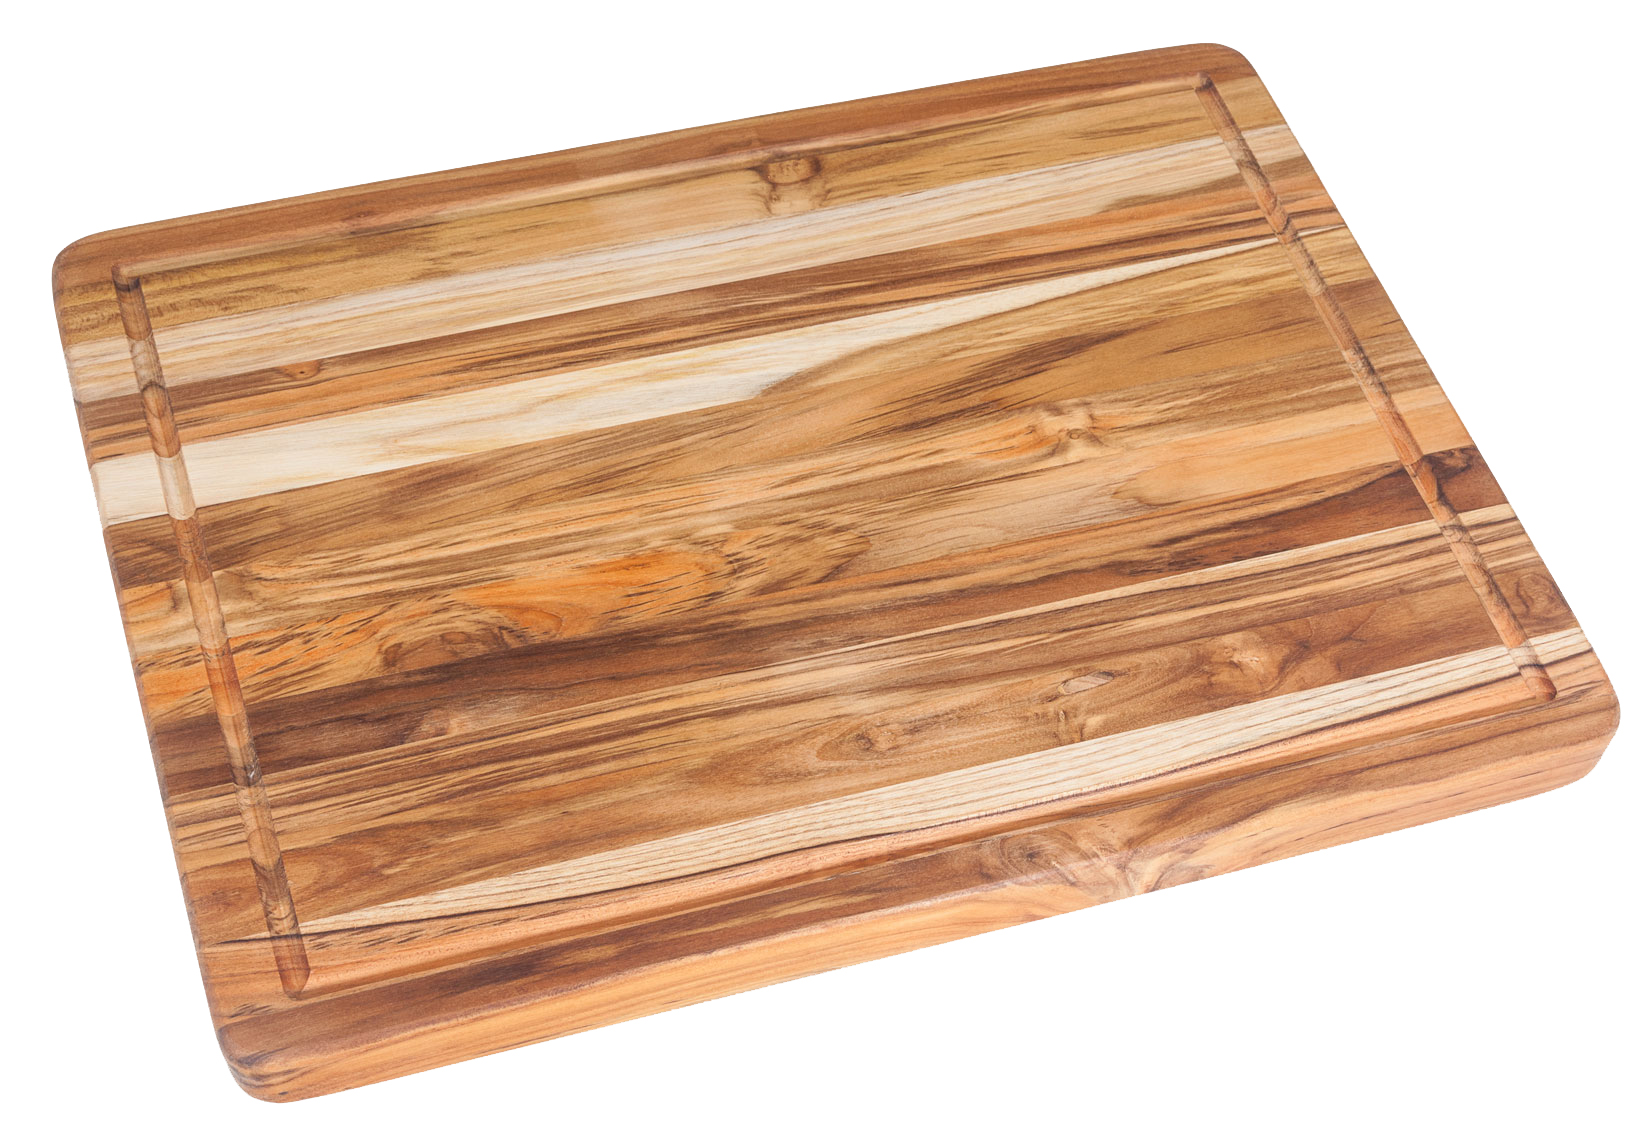 Proteak Large Teak Carving Board with Juice Groove – 24